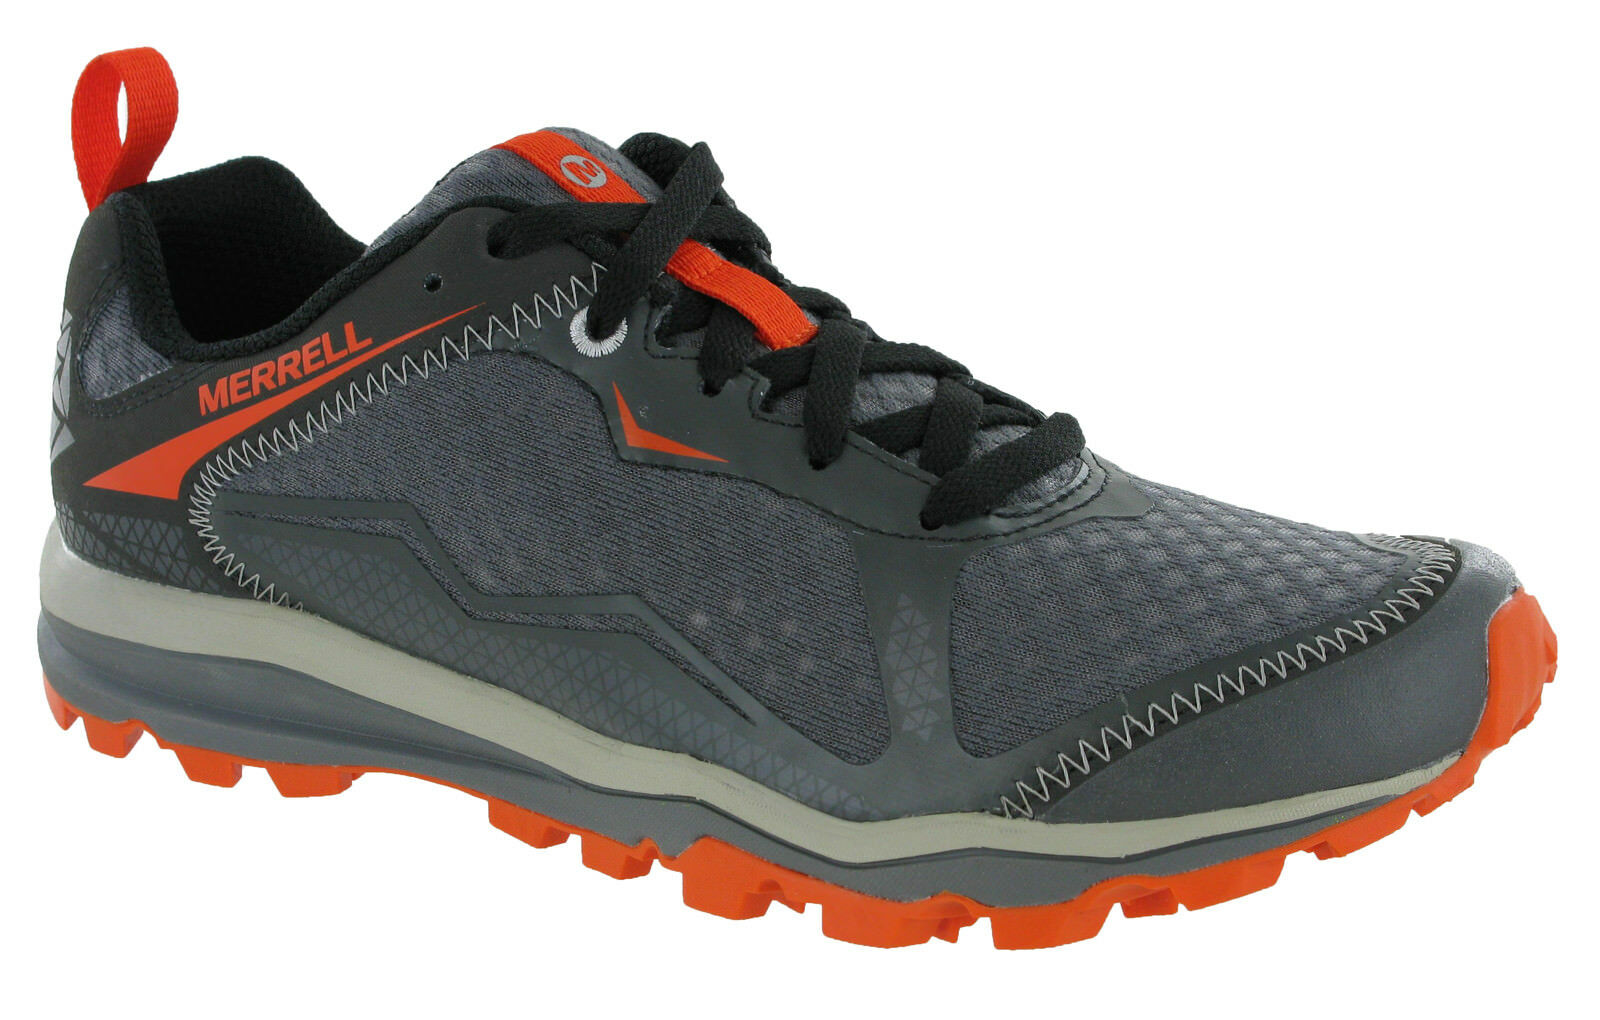 Merrell All All Merrell Out Crush Light Wandern Grau Herren Turnschuhe J35545 cb9cfc